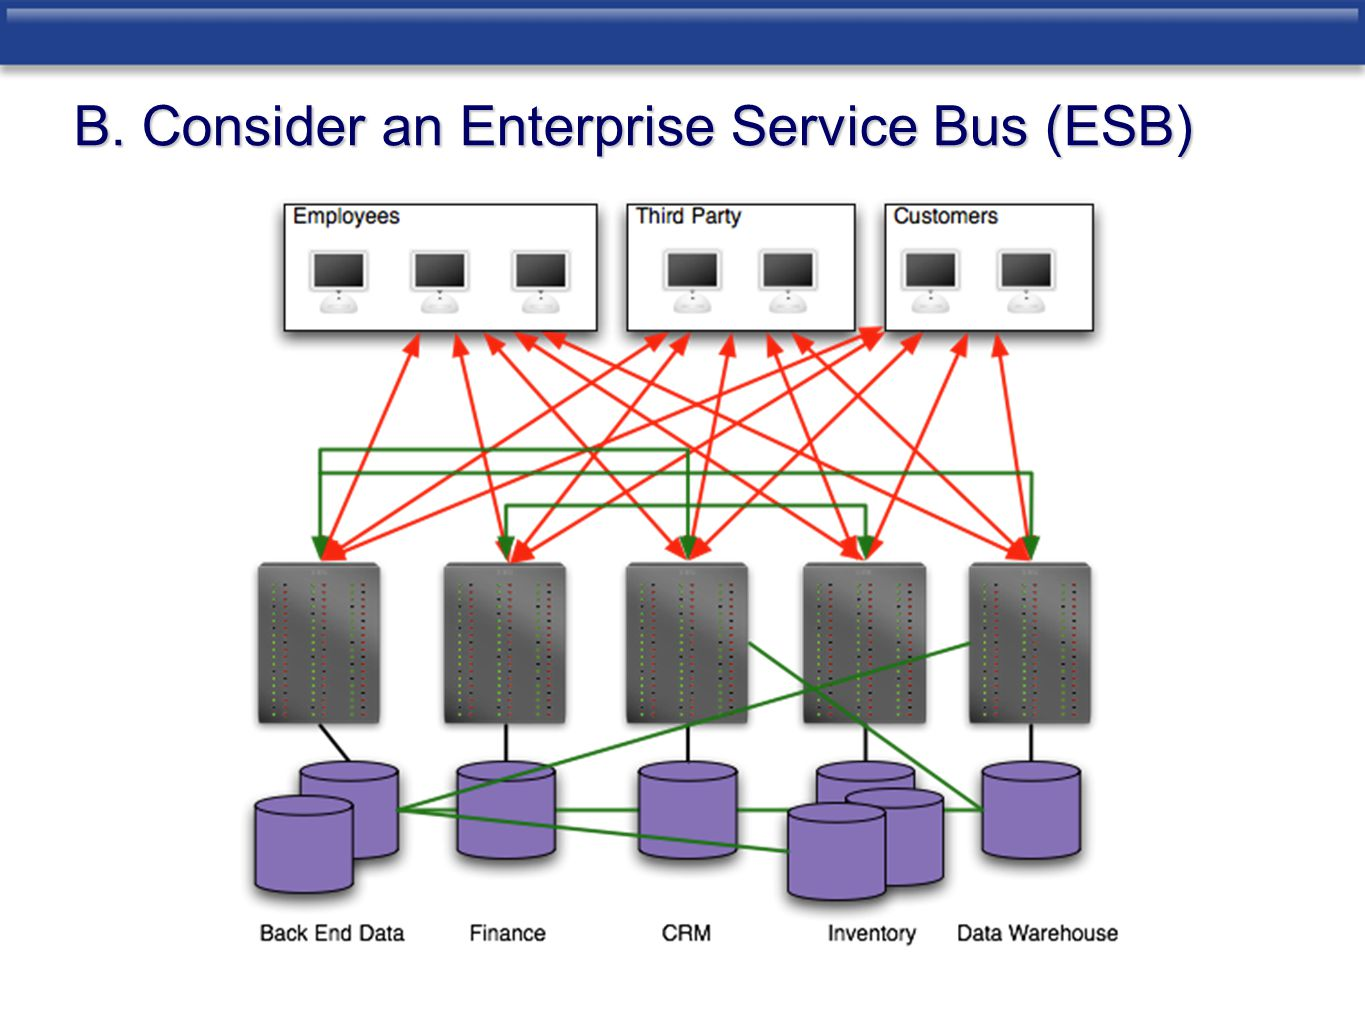 B. Consider an Enterprise Service Bus (ESB)